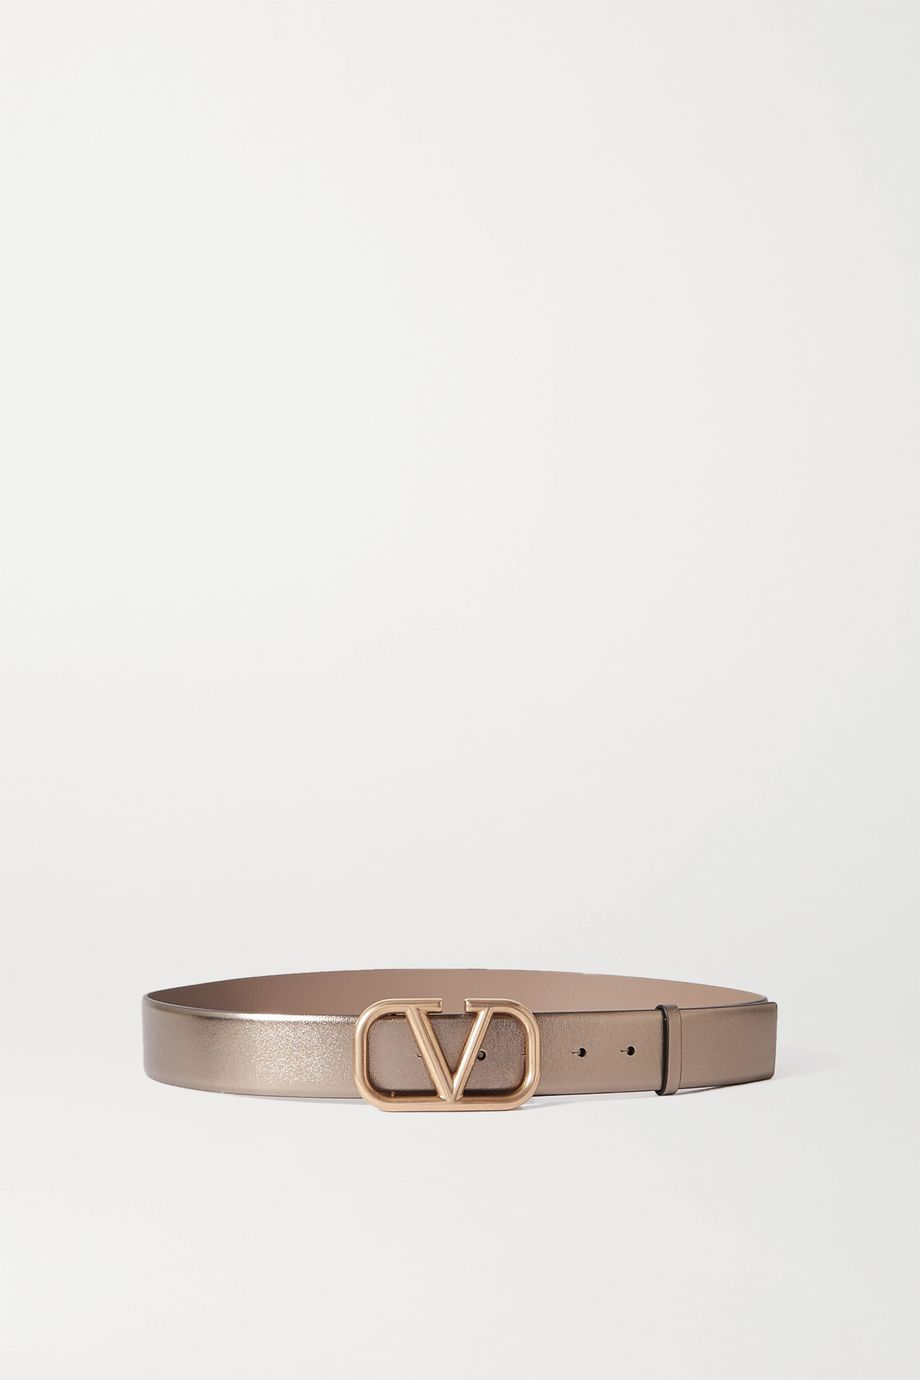 Valentino Valentino Garavani metallic leather belt